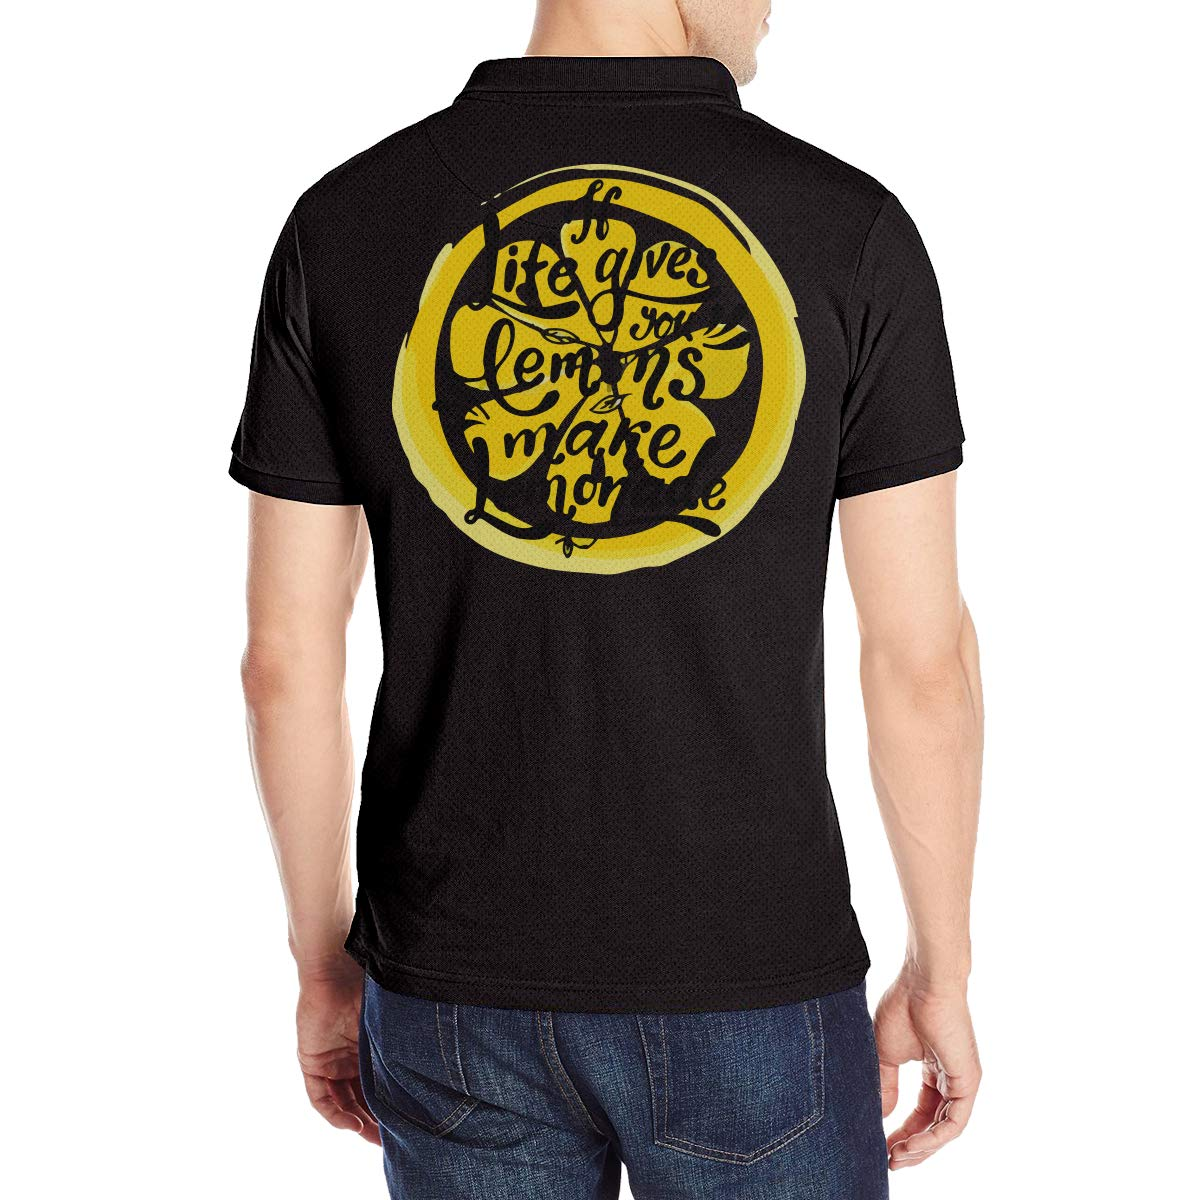 Wk74Lu@@ If Life Gives You Lemons Make Lemonade Mens Short Sleeve Polo Shirt Cotton Contrast Color Jersey Tees